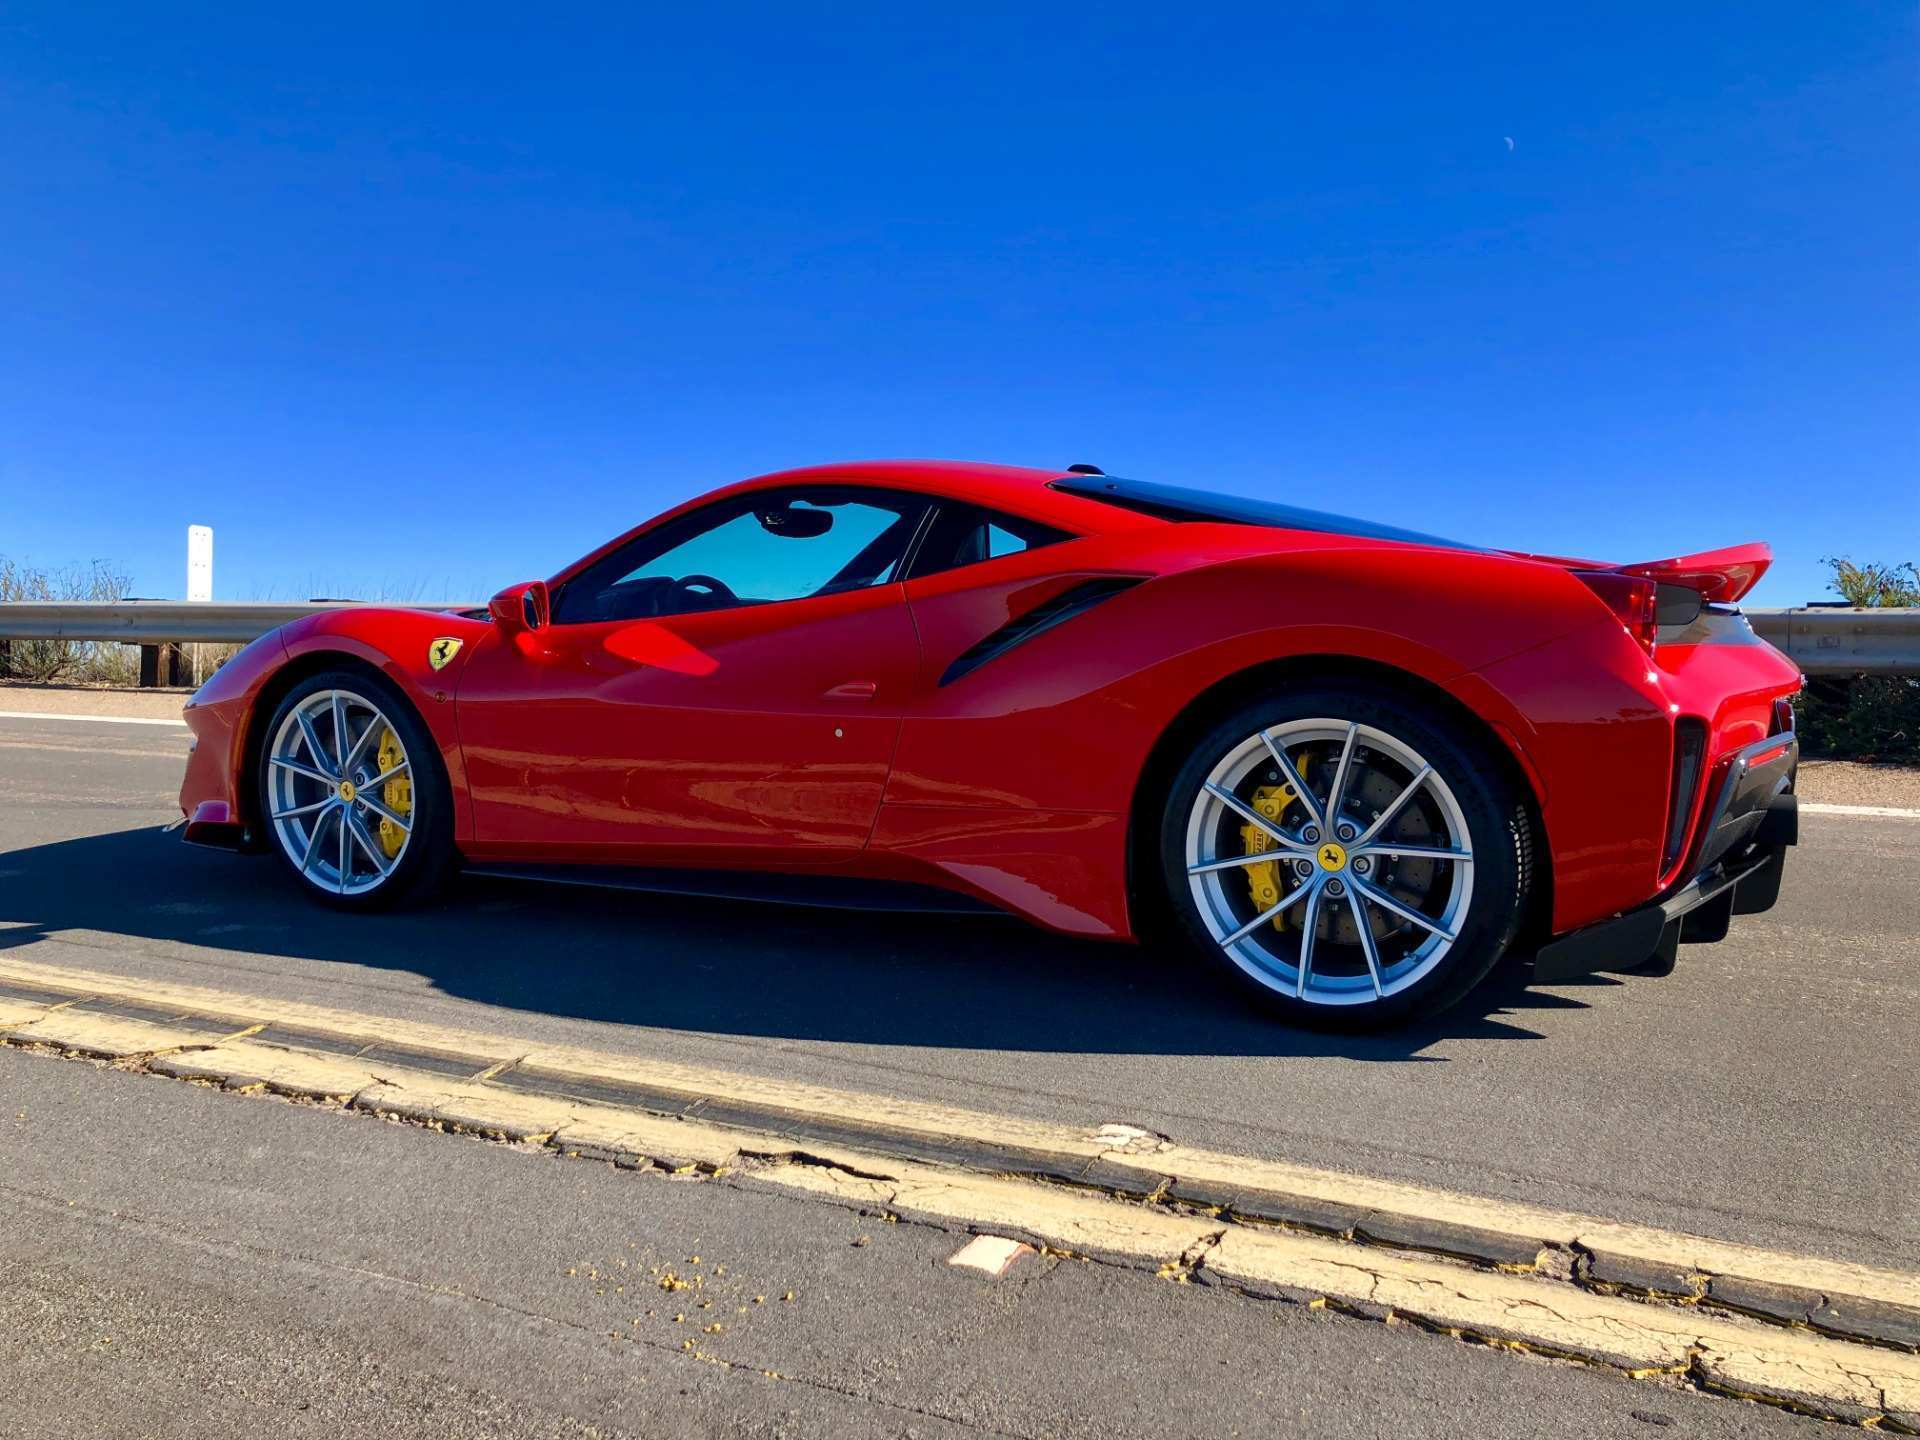 30 Best Review 2019 Ferrari 488 Pista For Sale Photos for 2019 Ferrari 488 Pista For Sale